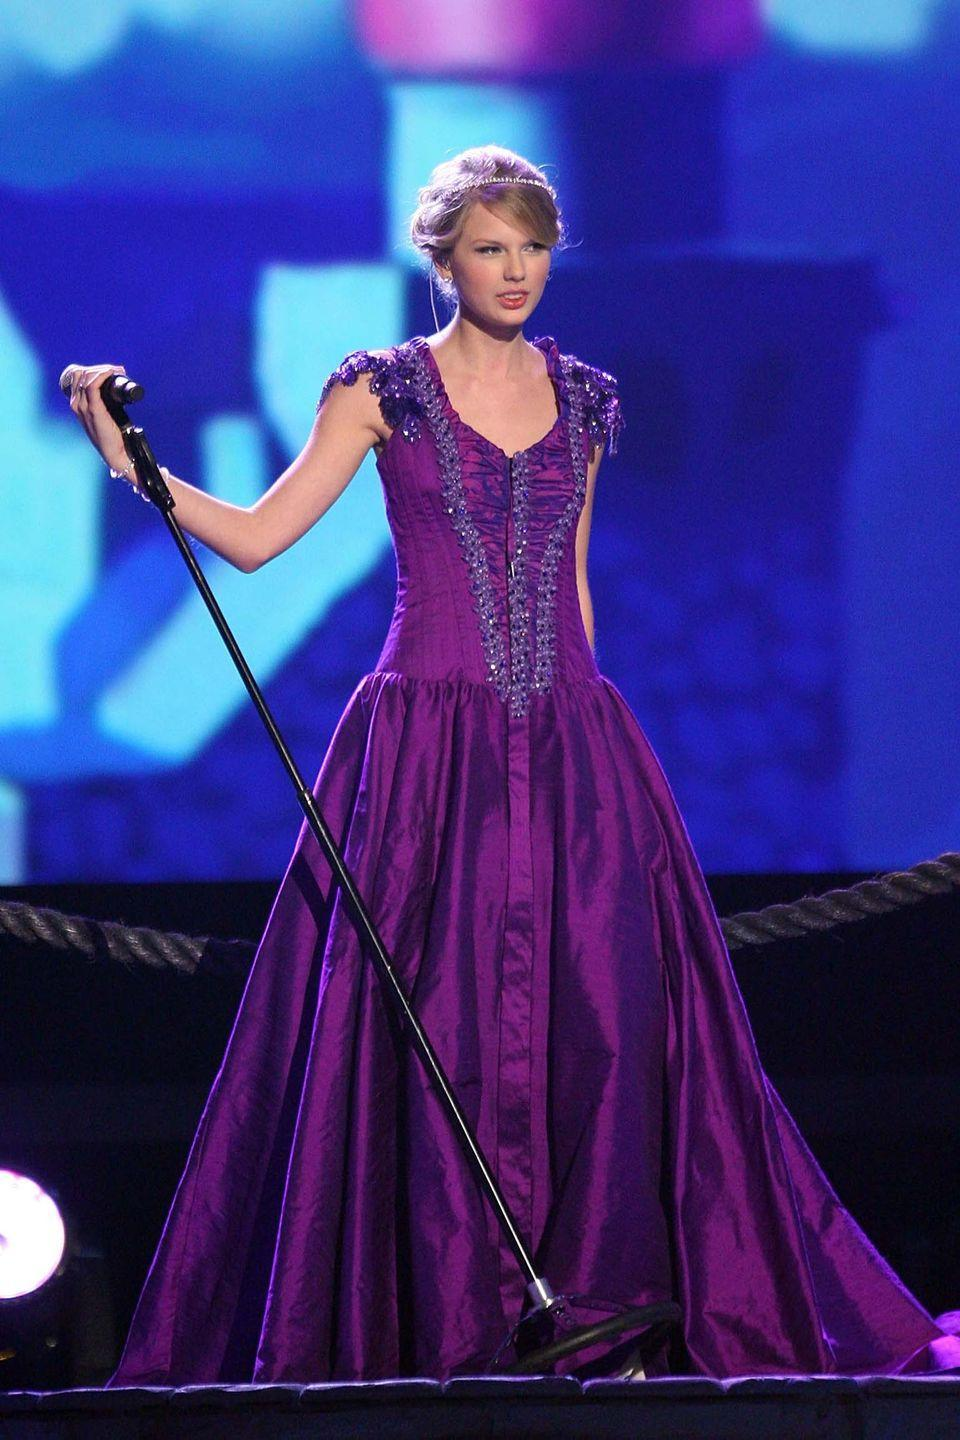 """<p>Taylor Swift wore this purple lace-up princess gown to perform her song """"Love Story"""" at the 2008 CMA Awards before <em>Tangled</em> even came out, but the whole look is still very Rapunzel to us.</p>"""